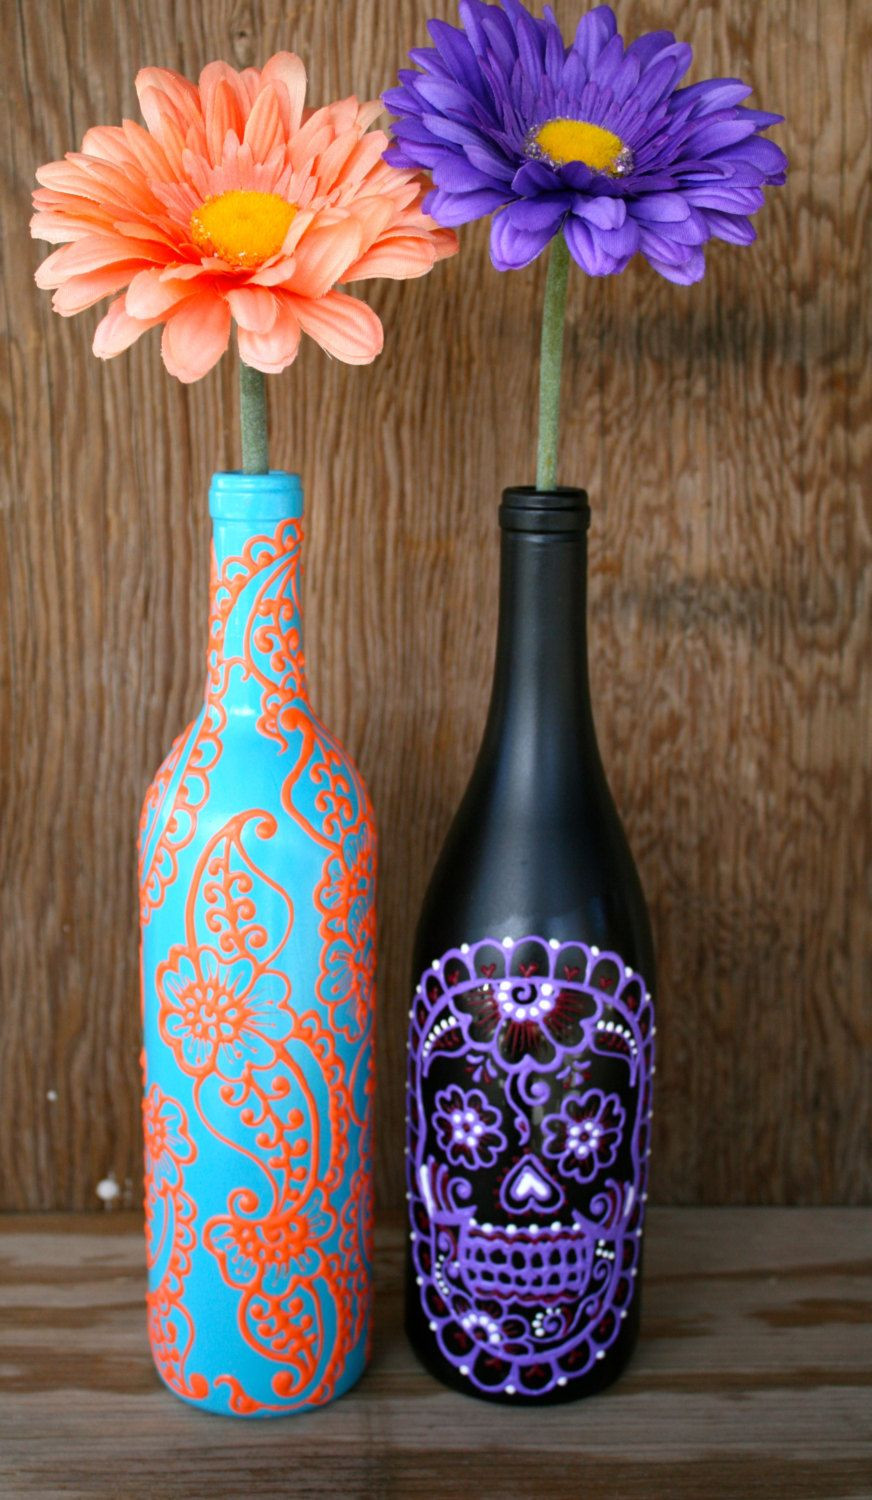 light up rocks for vases of hand painted wine bottle vase up cycled turquoise and coral orange for hand painted wine bottle vase up cycled turquoise and coral orange vibrant henna style design 25 00 via etsy